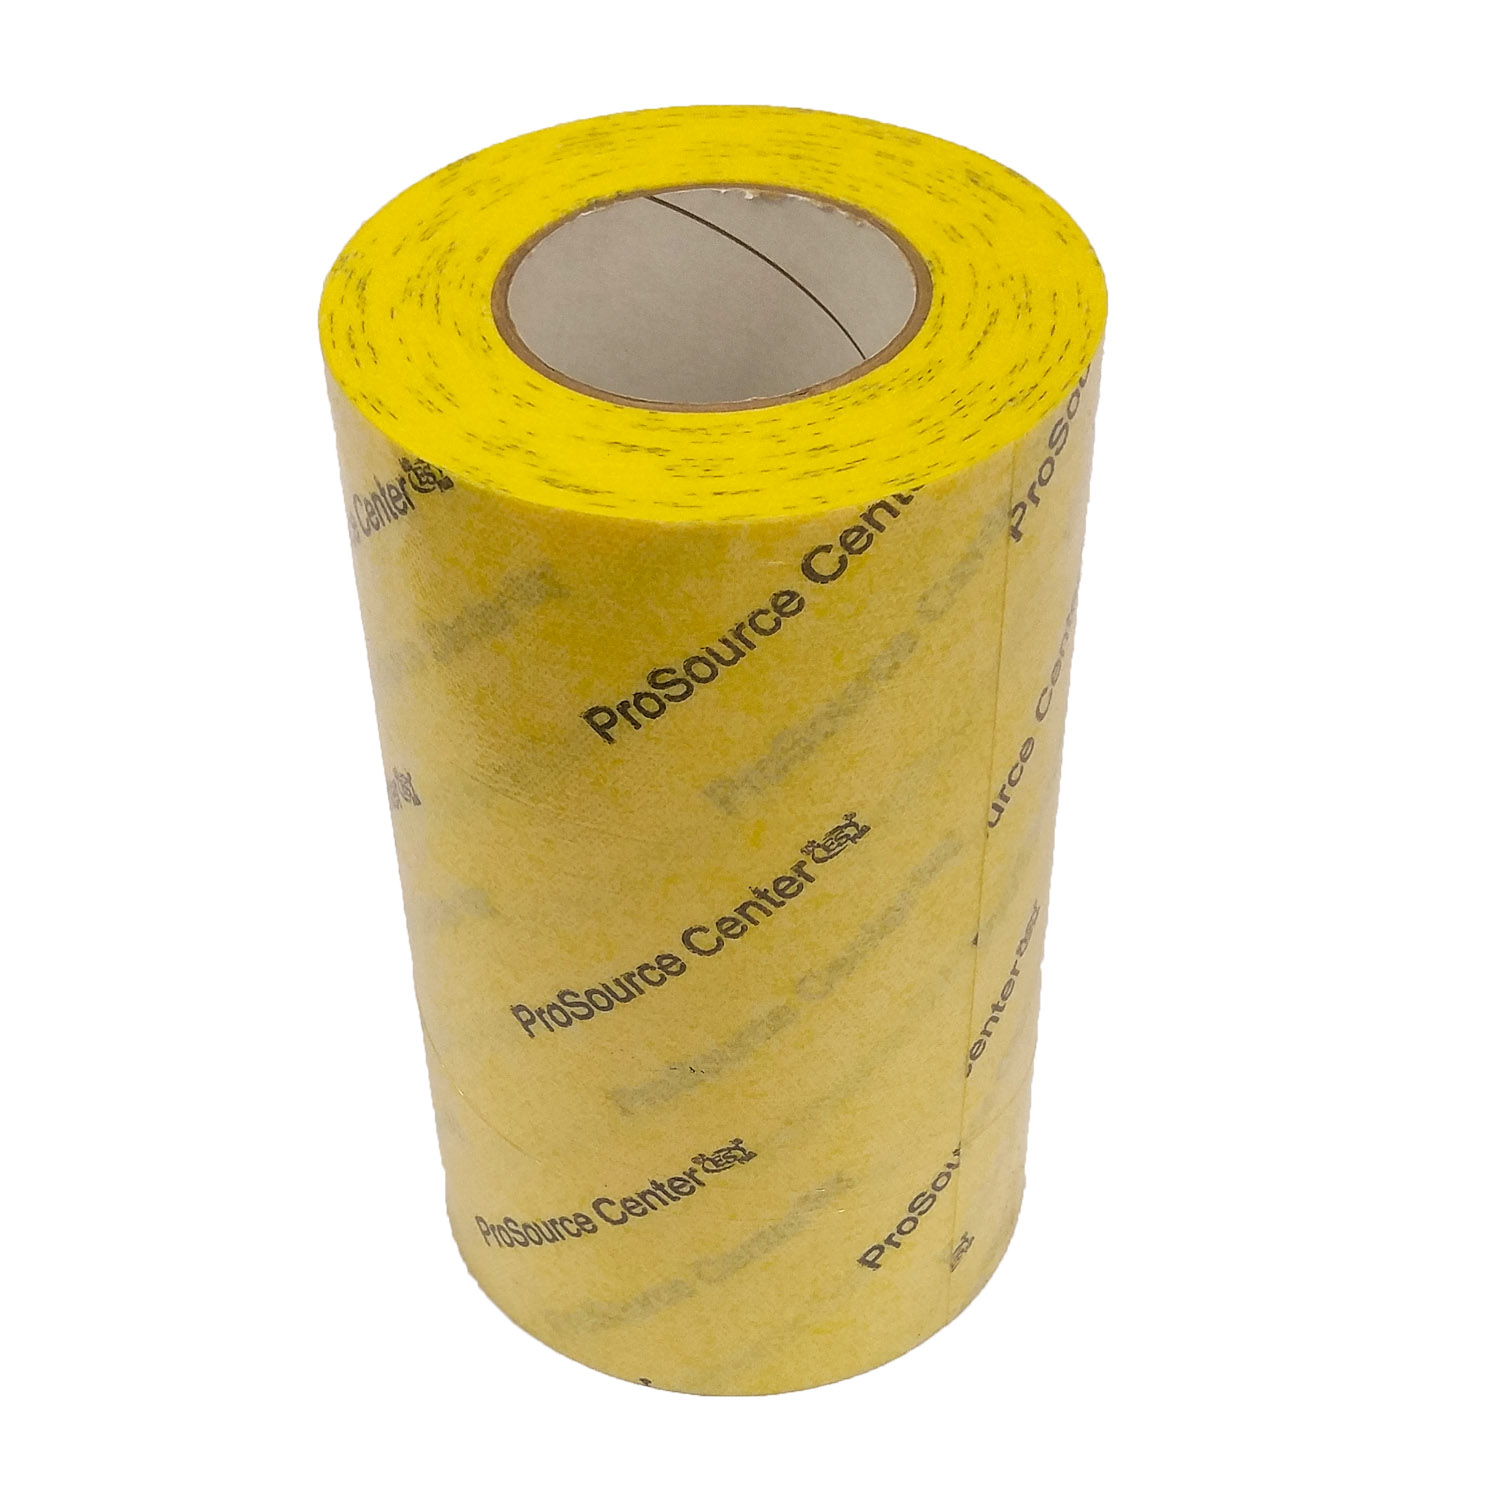 PSC Pro WP Waterproofing Seam Strips 10 Inch 33 Foot Roll by Pro-Source Center